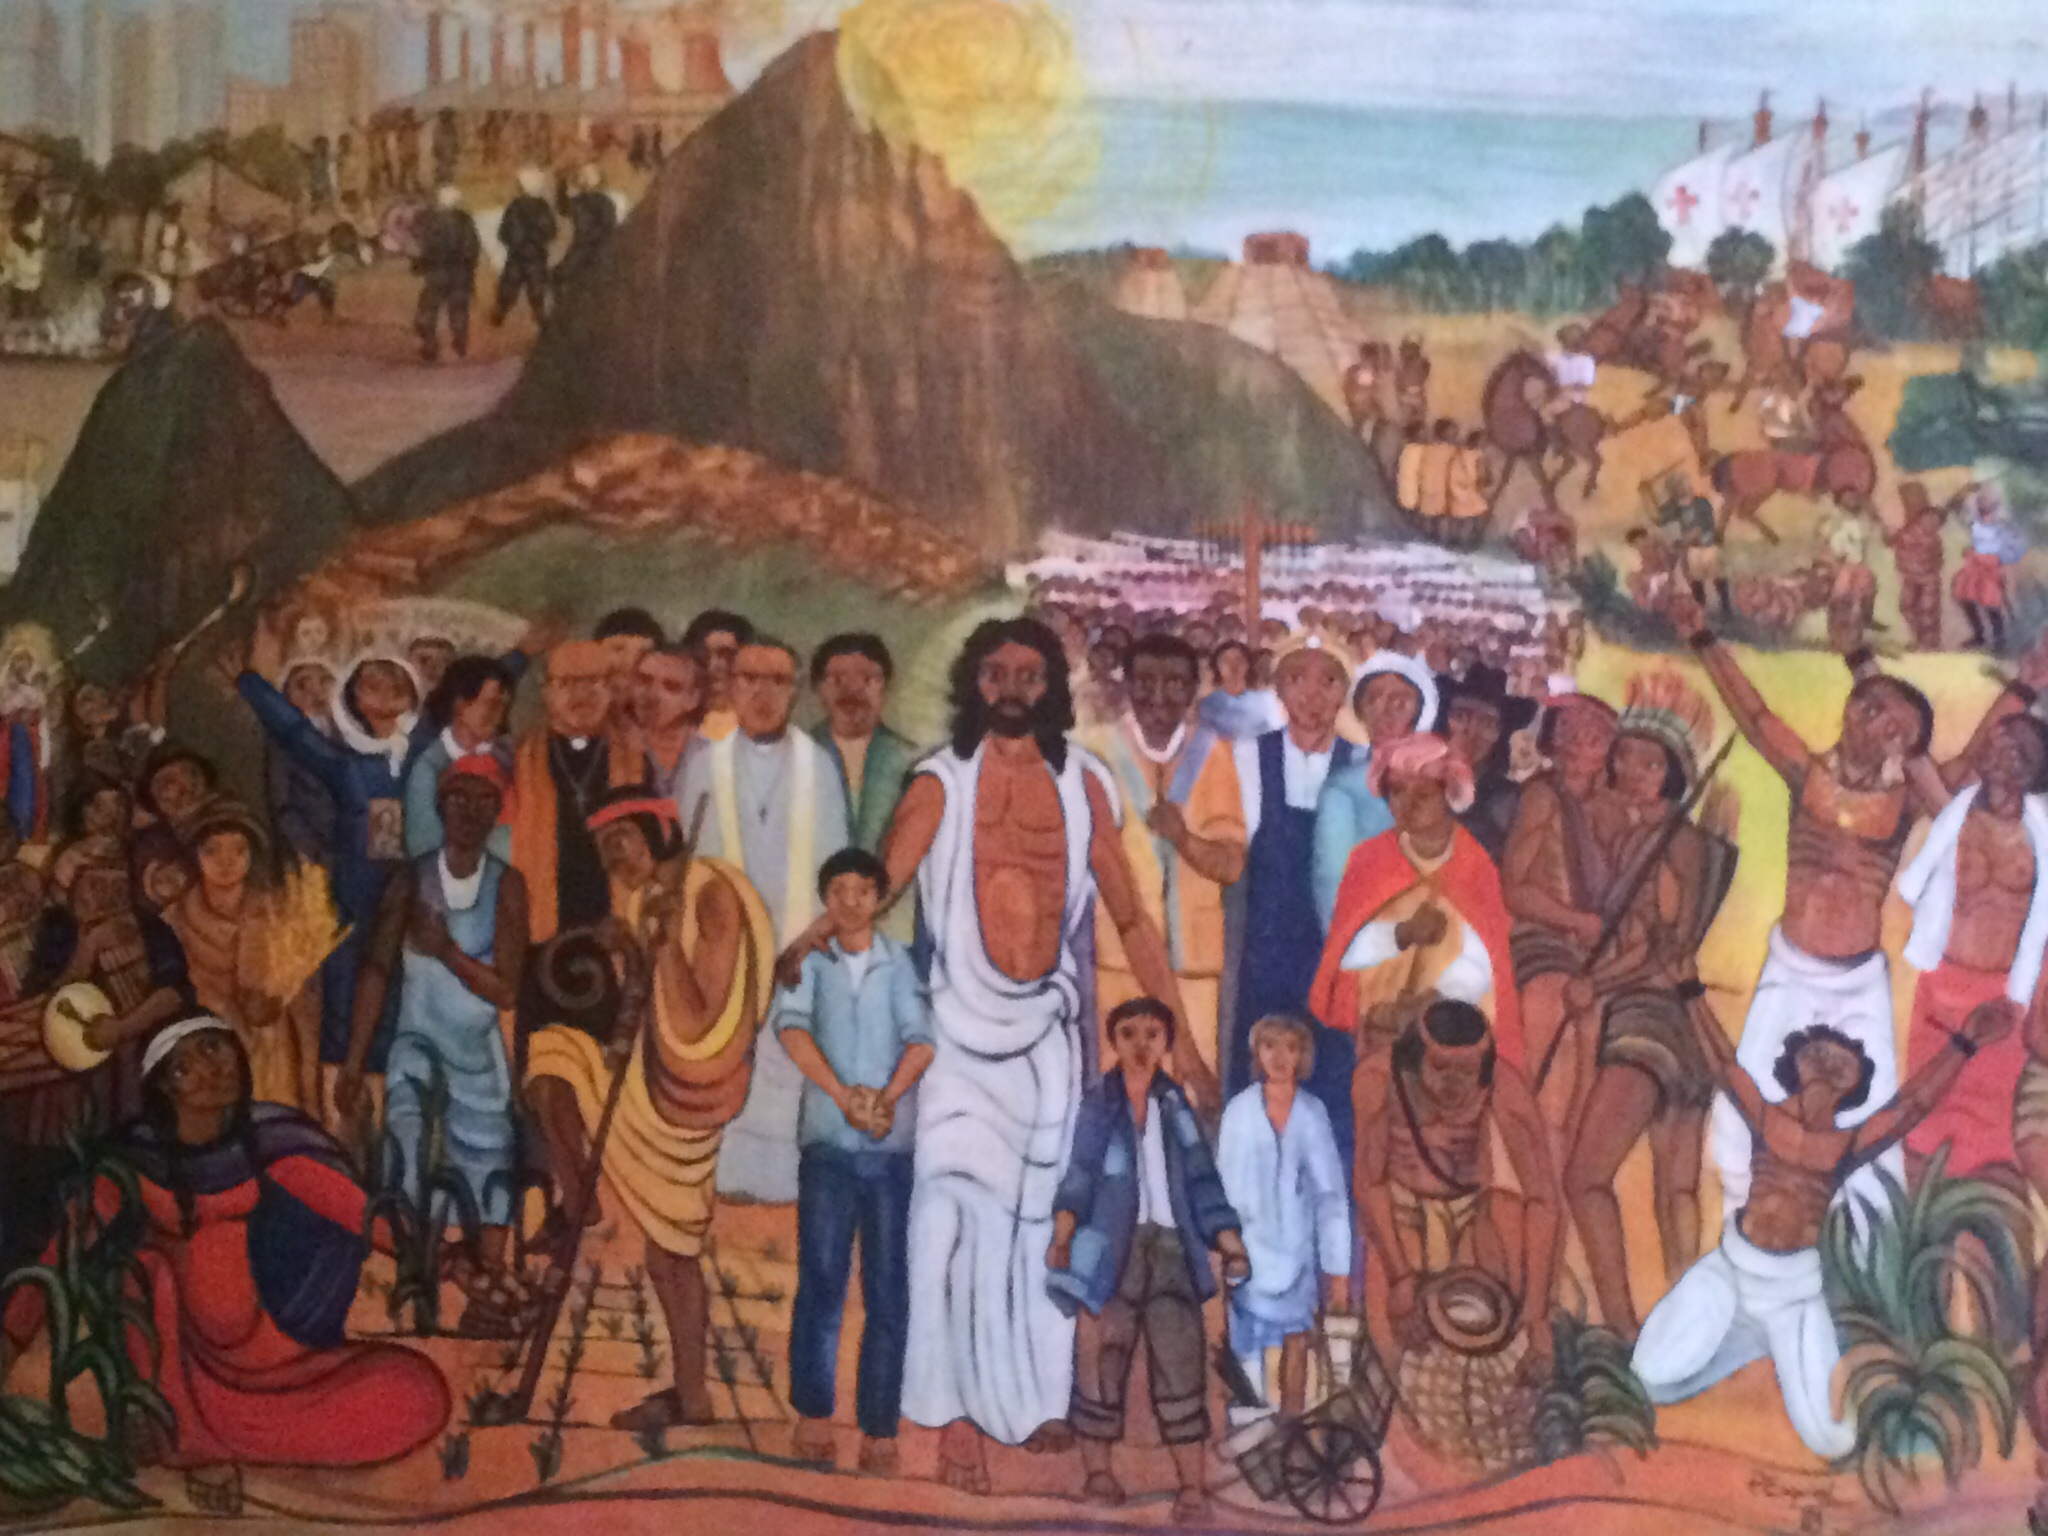 The church in Lauzerte had this painting of Jesus welcoming all indigenous peoples.